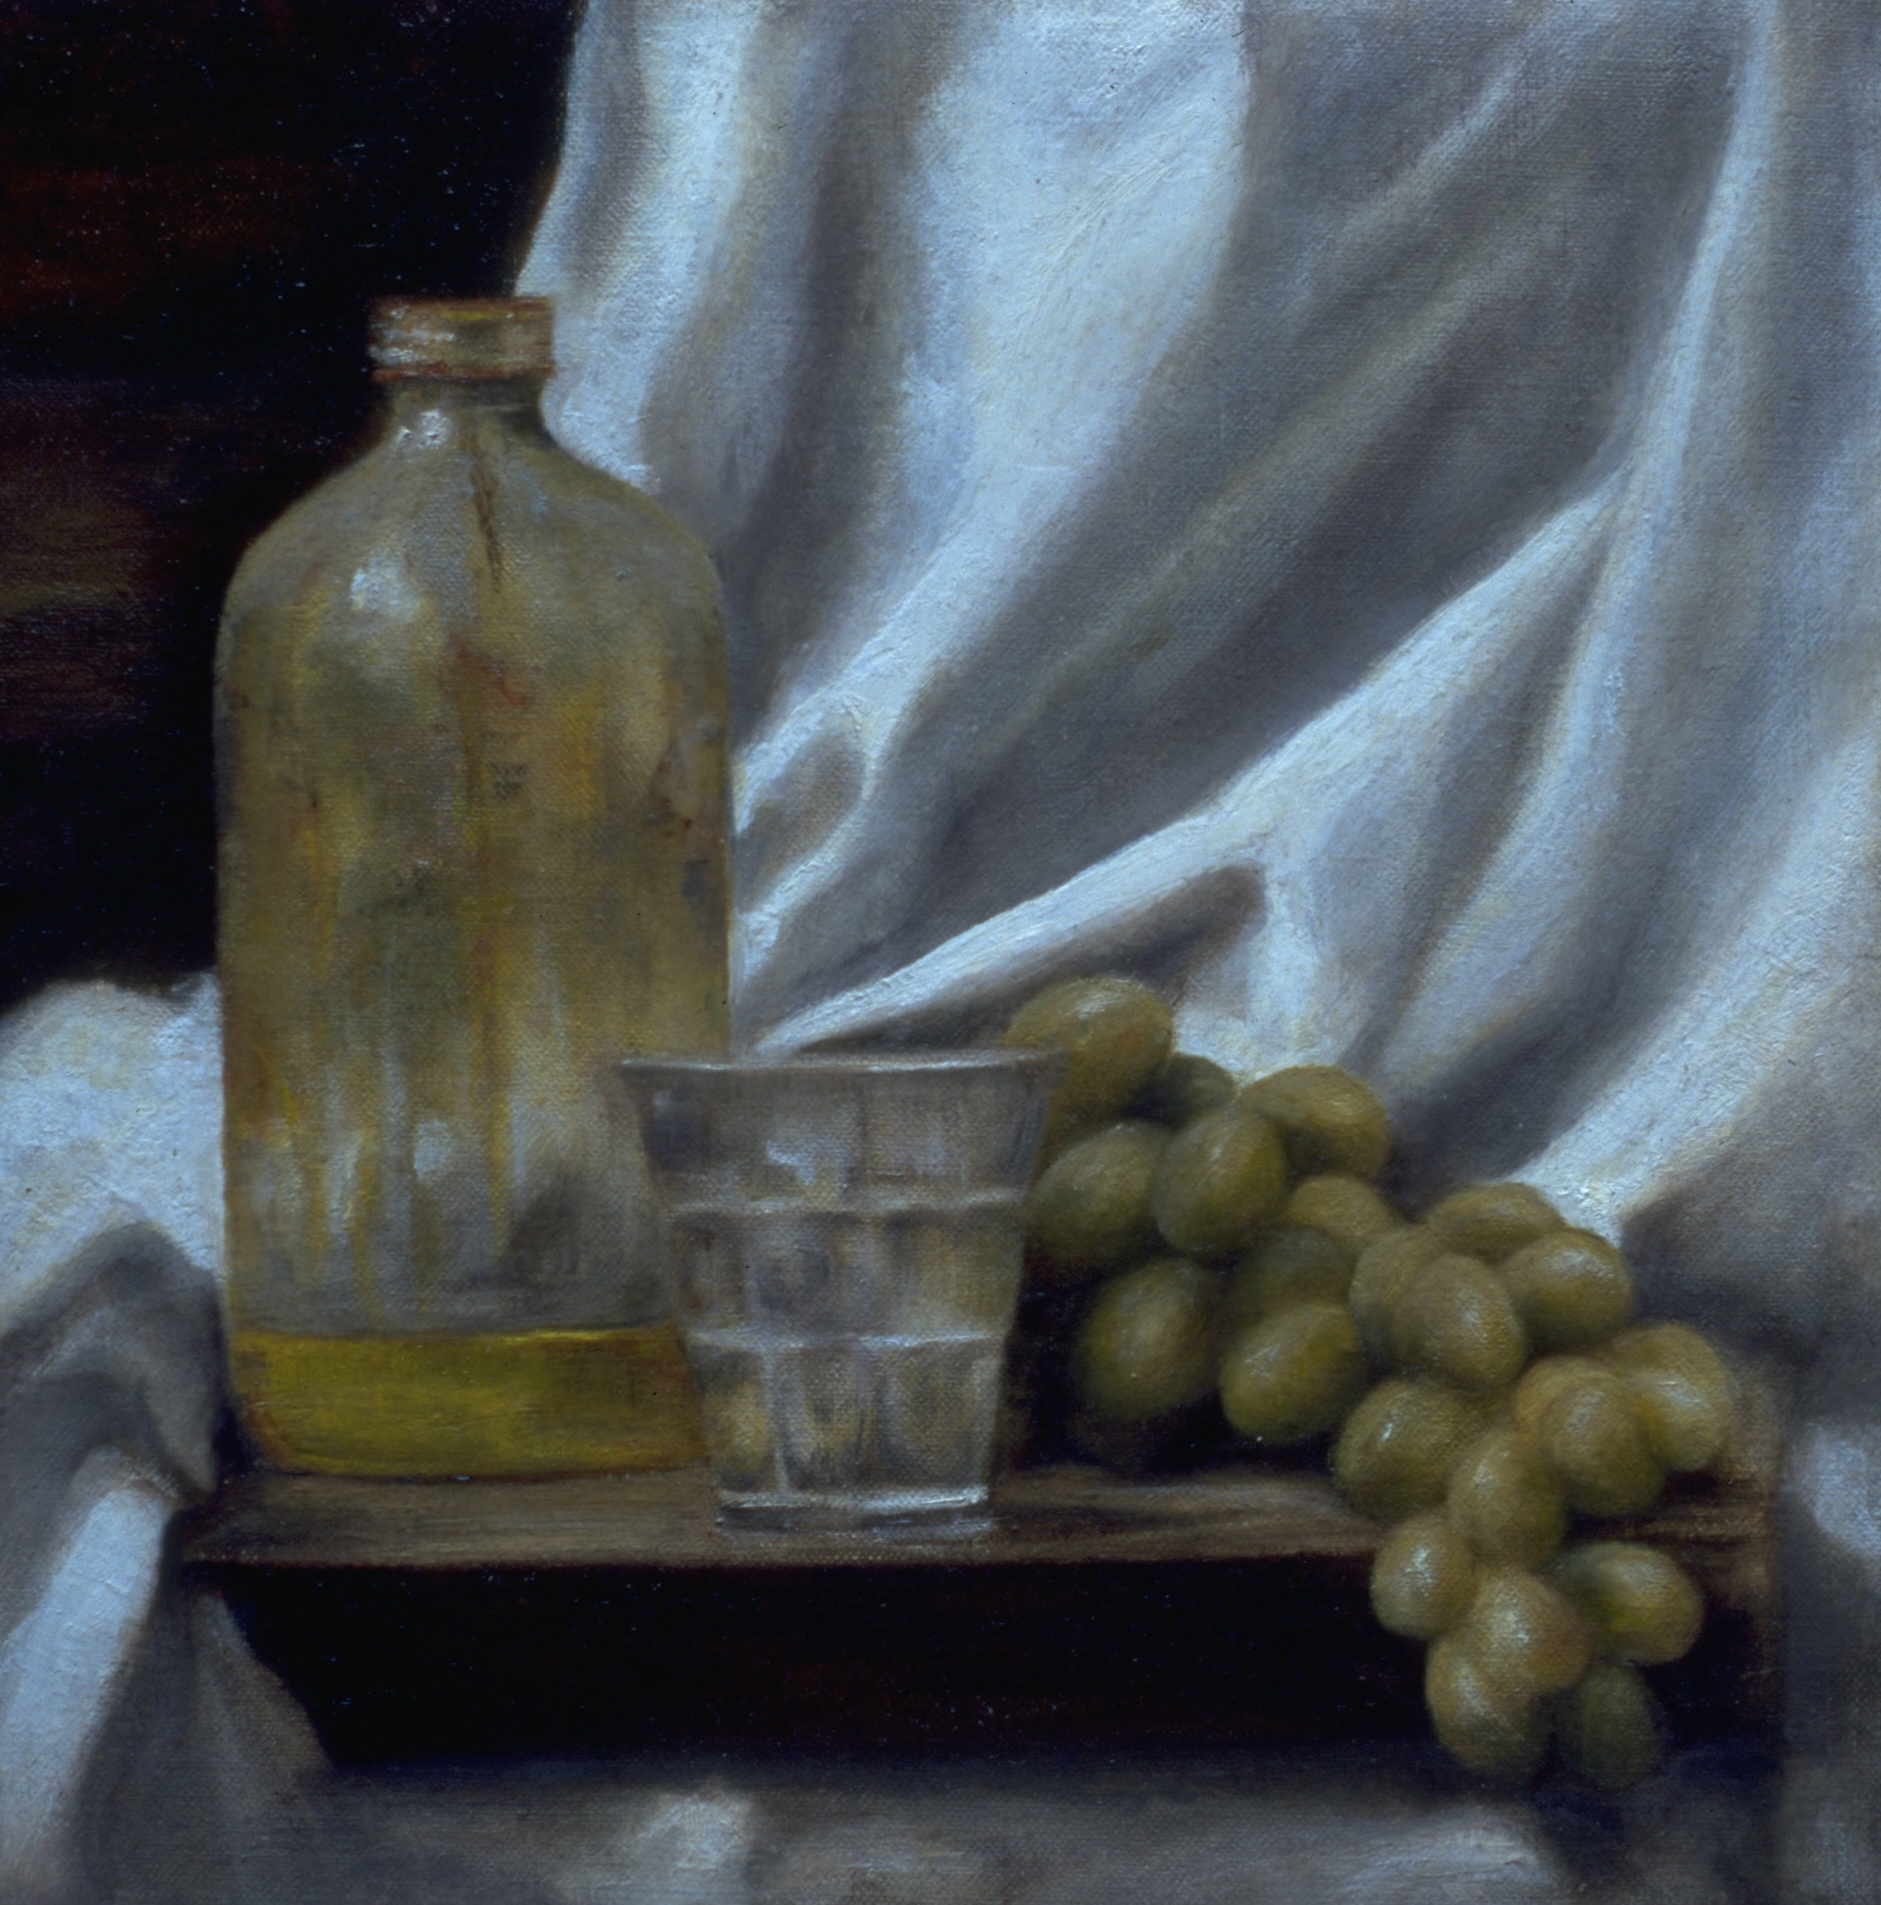 Oil, Water and Grapes